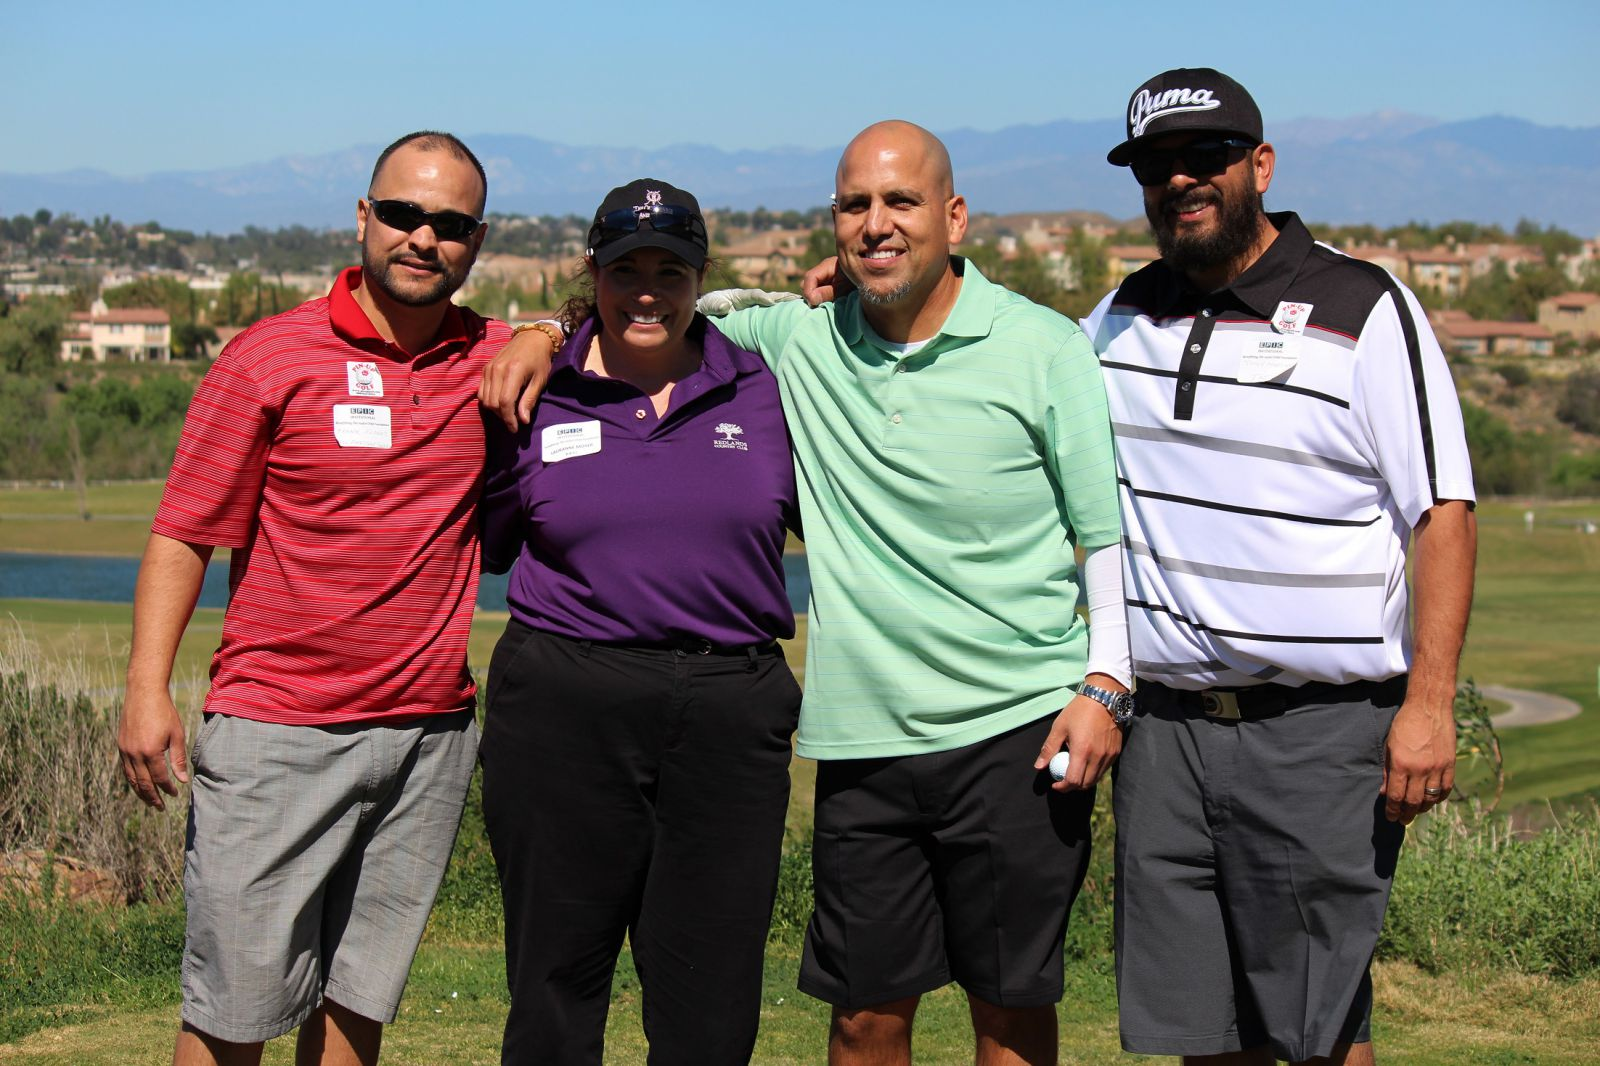 Dos Lagos Golf Course is a hot spot for golf tournaments in the Inland Empire